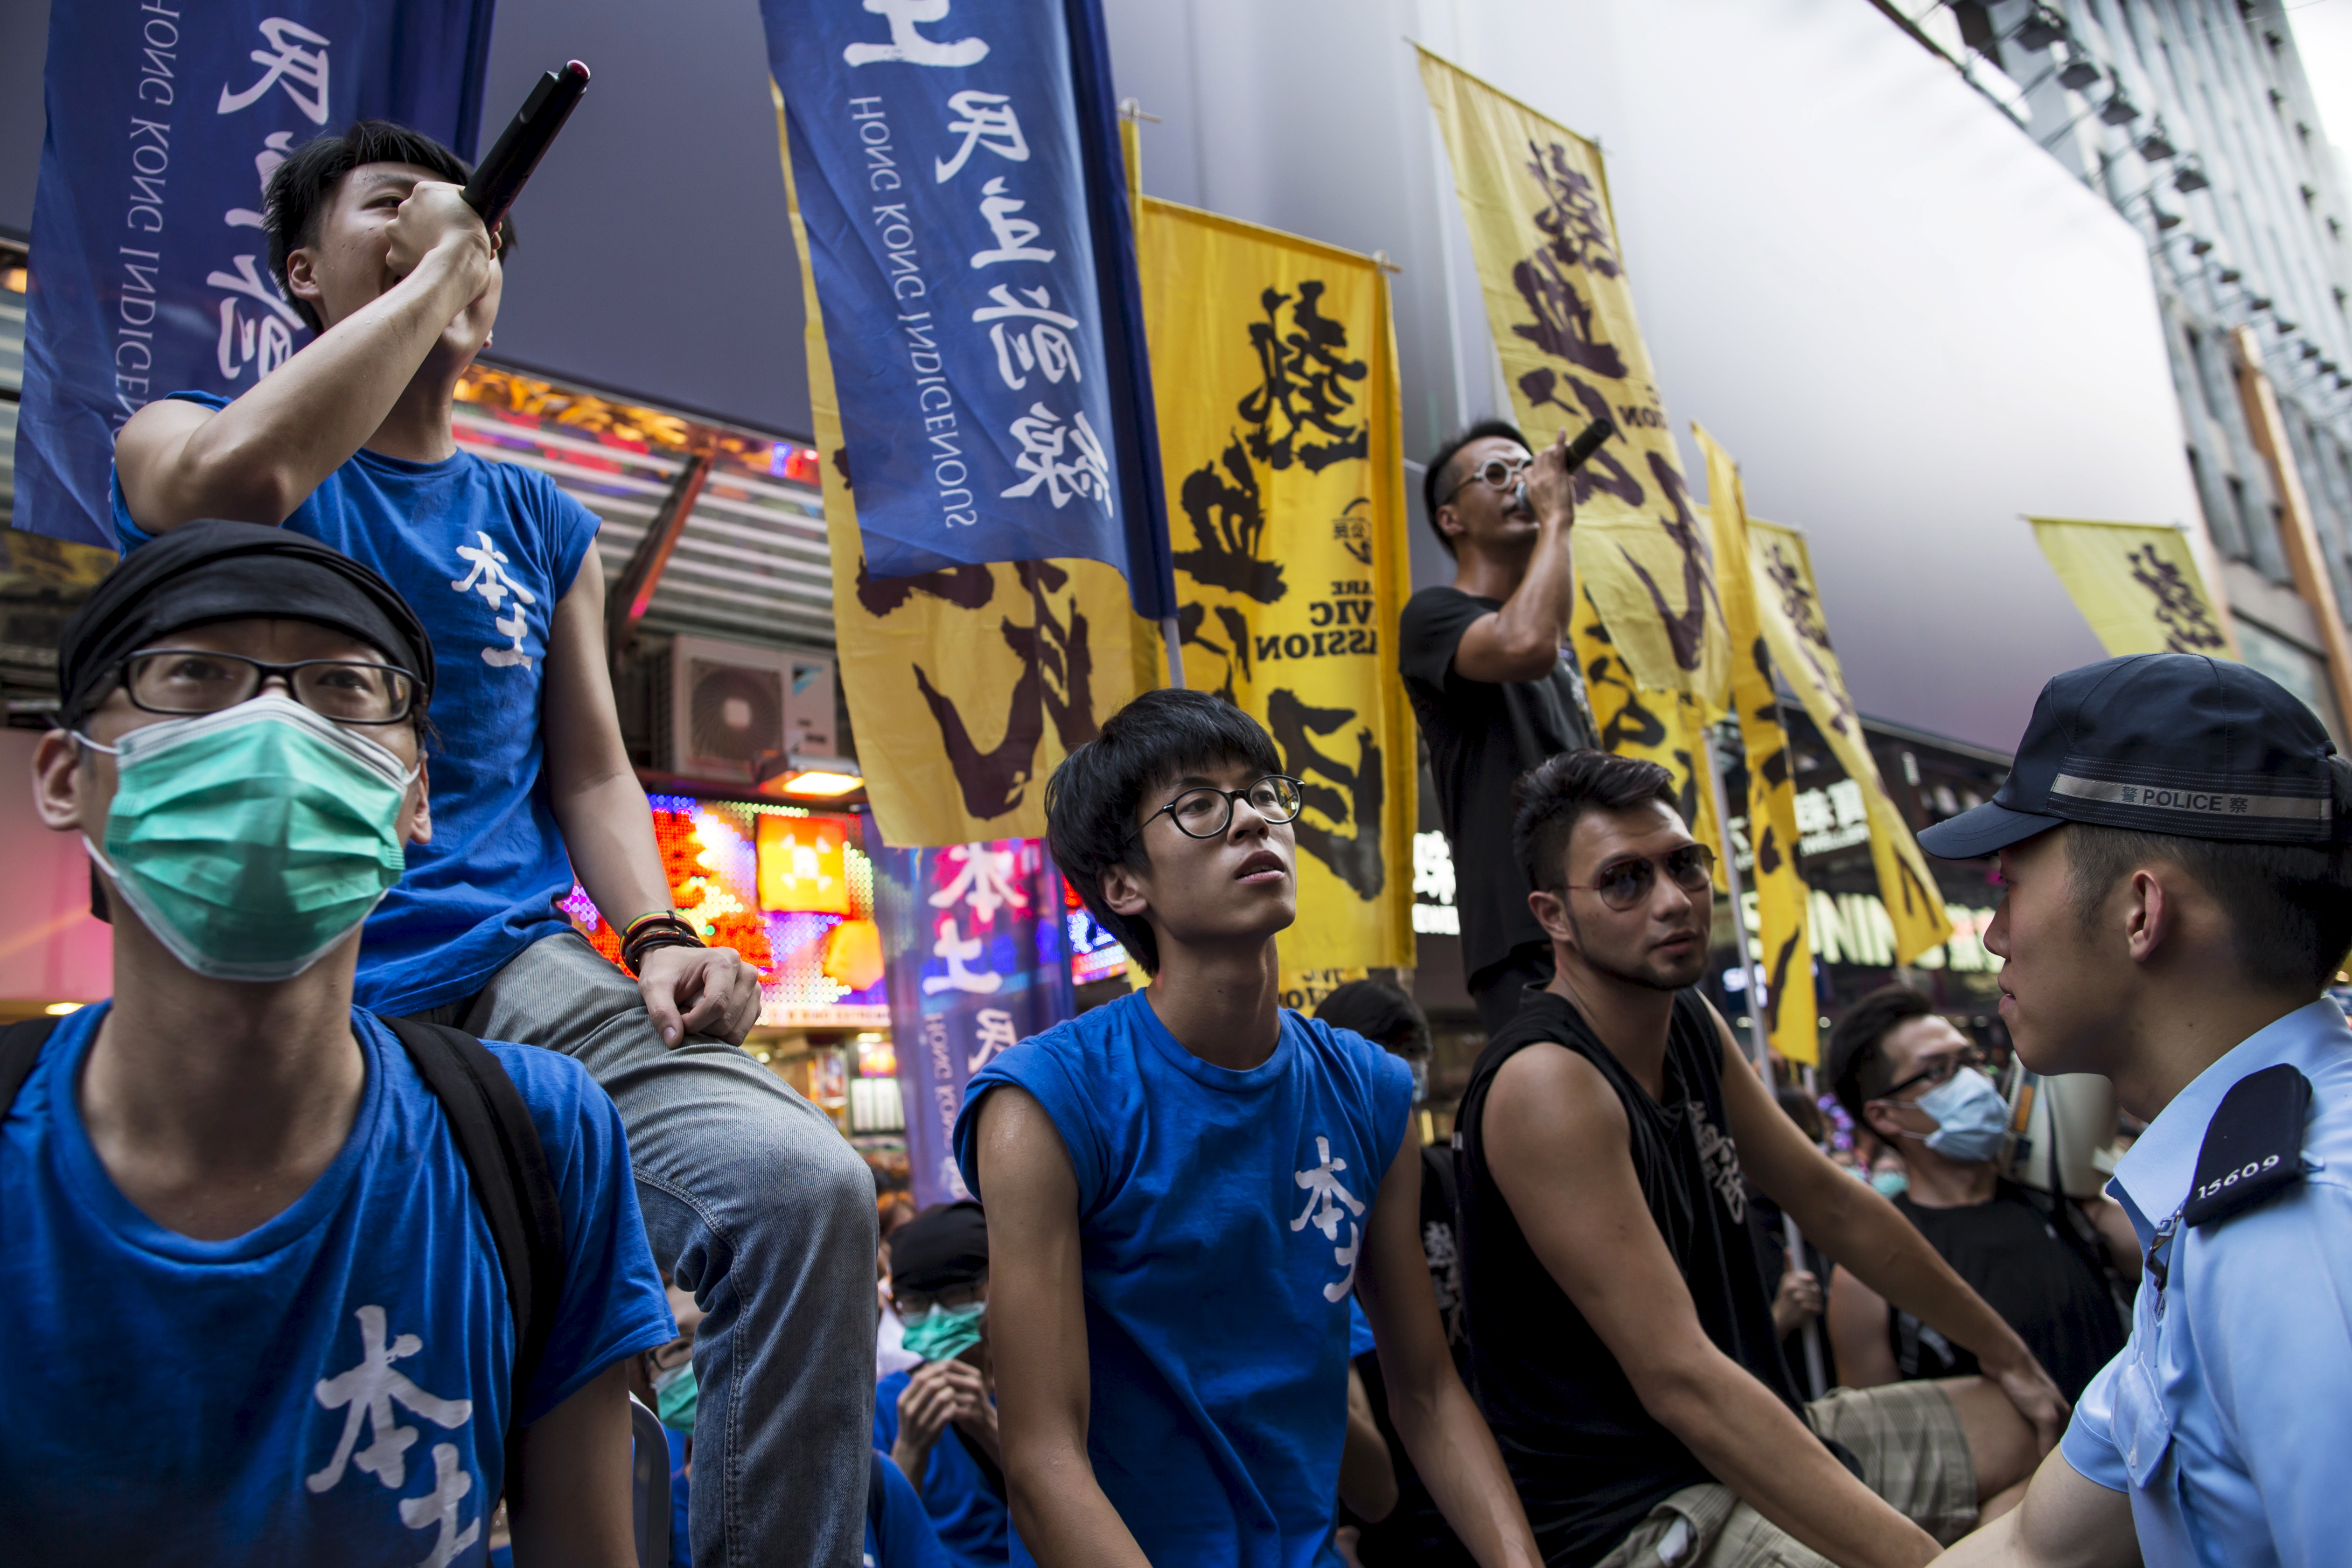 Localist protesters shout to pro-China demonstrators during an anti-China protest at Mong Kok shopping district in Hong Kong on July 11, 2015